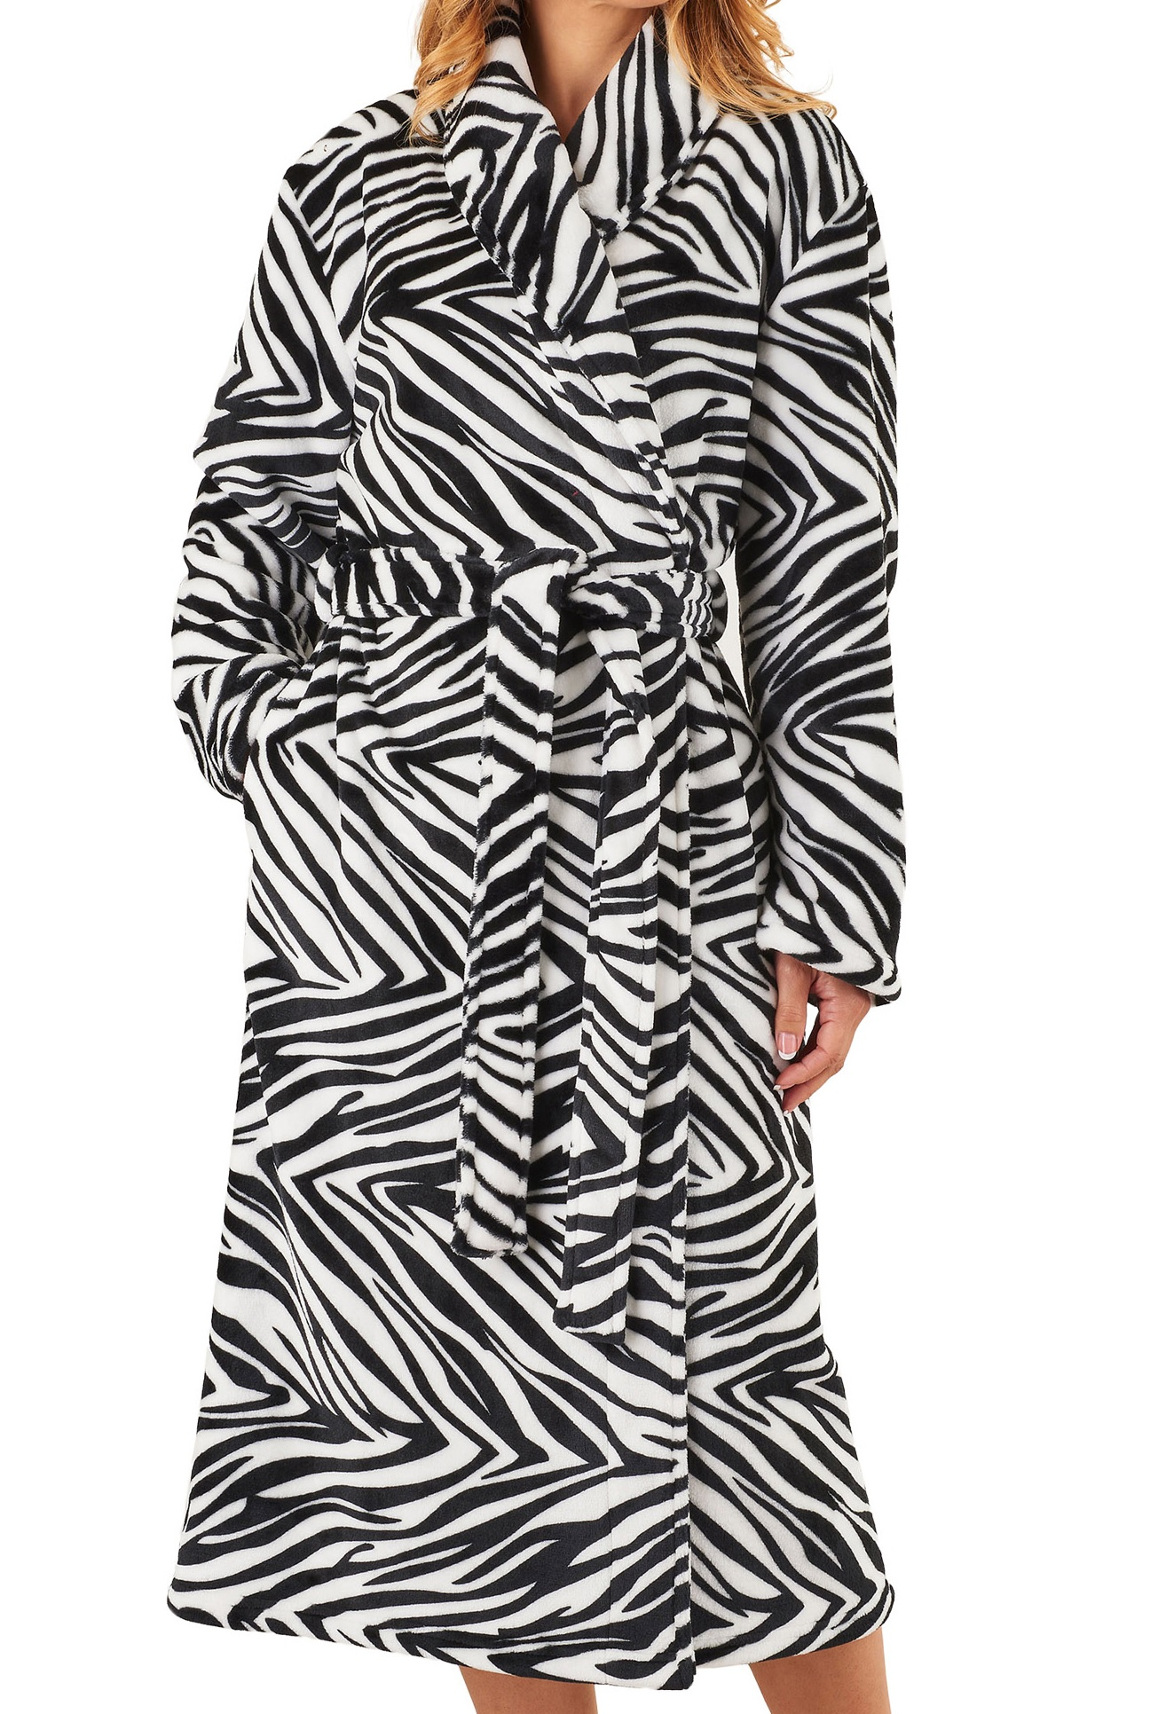 569f654b00 Dressing Gown Ladies Zebra Print Soft Fleece Slenderella Shawl Collar  Bathrobe